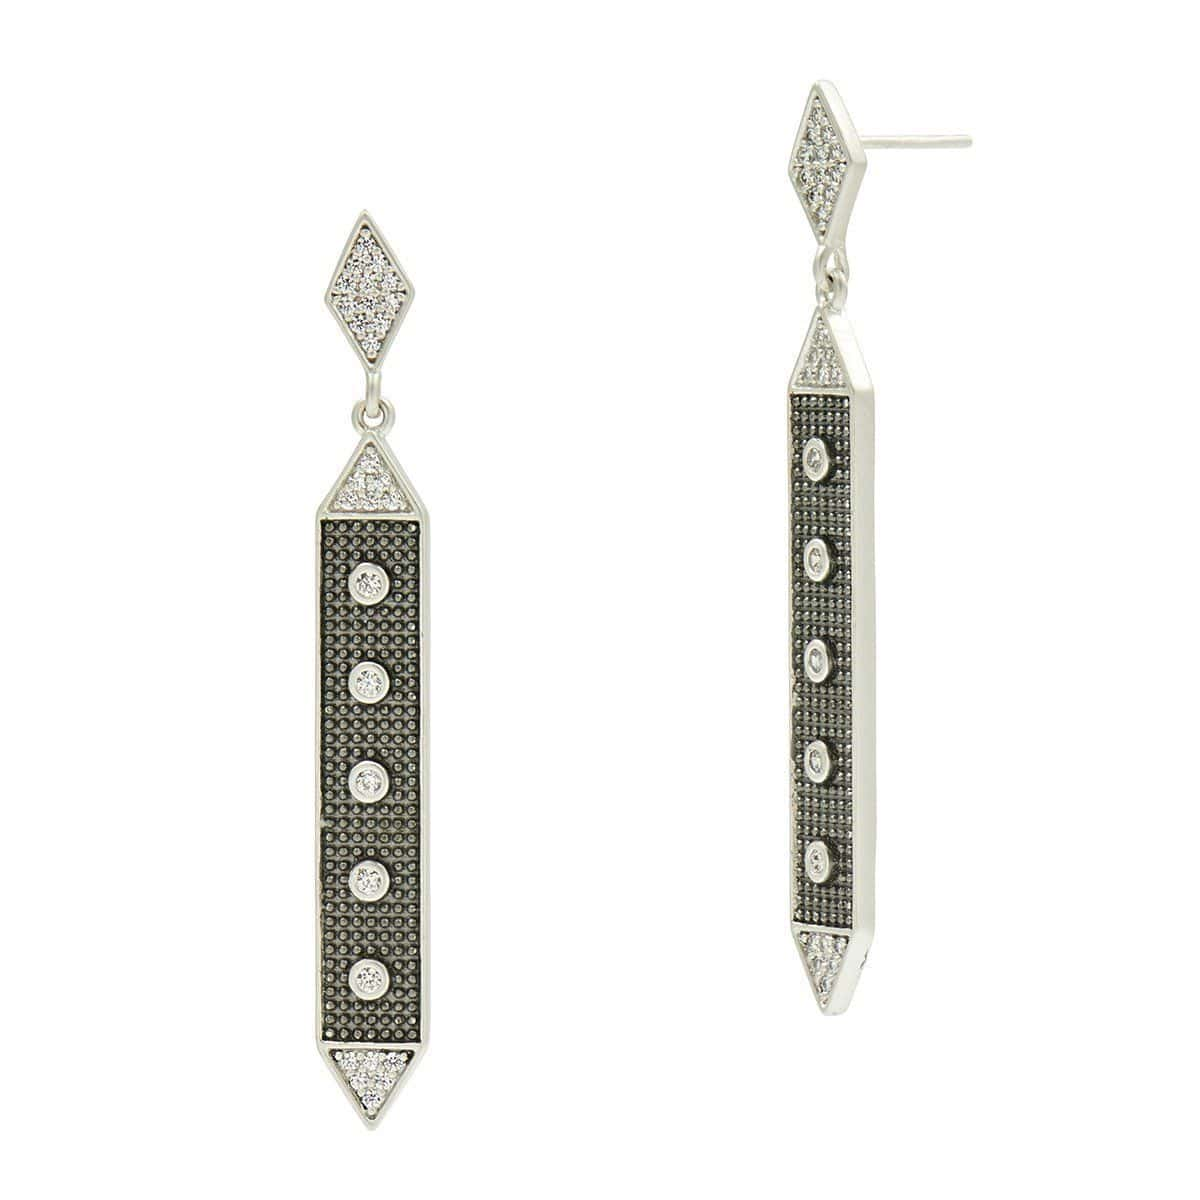 Industrial Finish Linear Hammered Drop Earrings - IFPKZE11